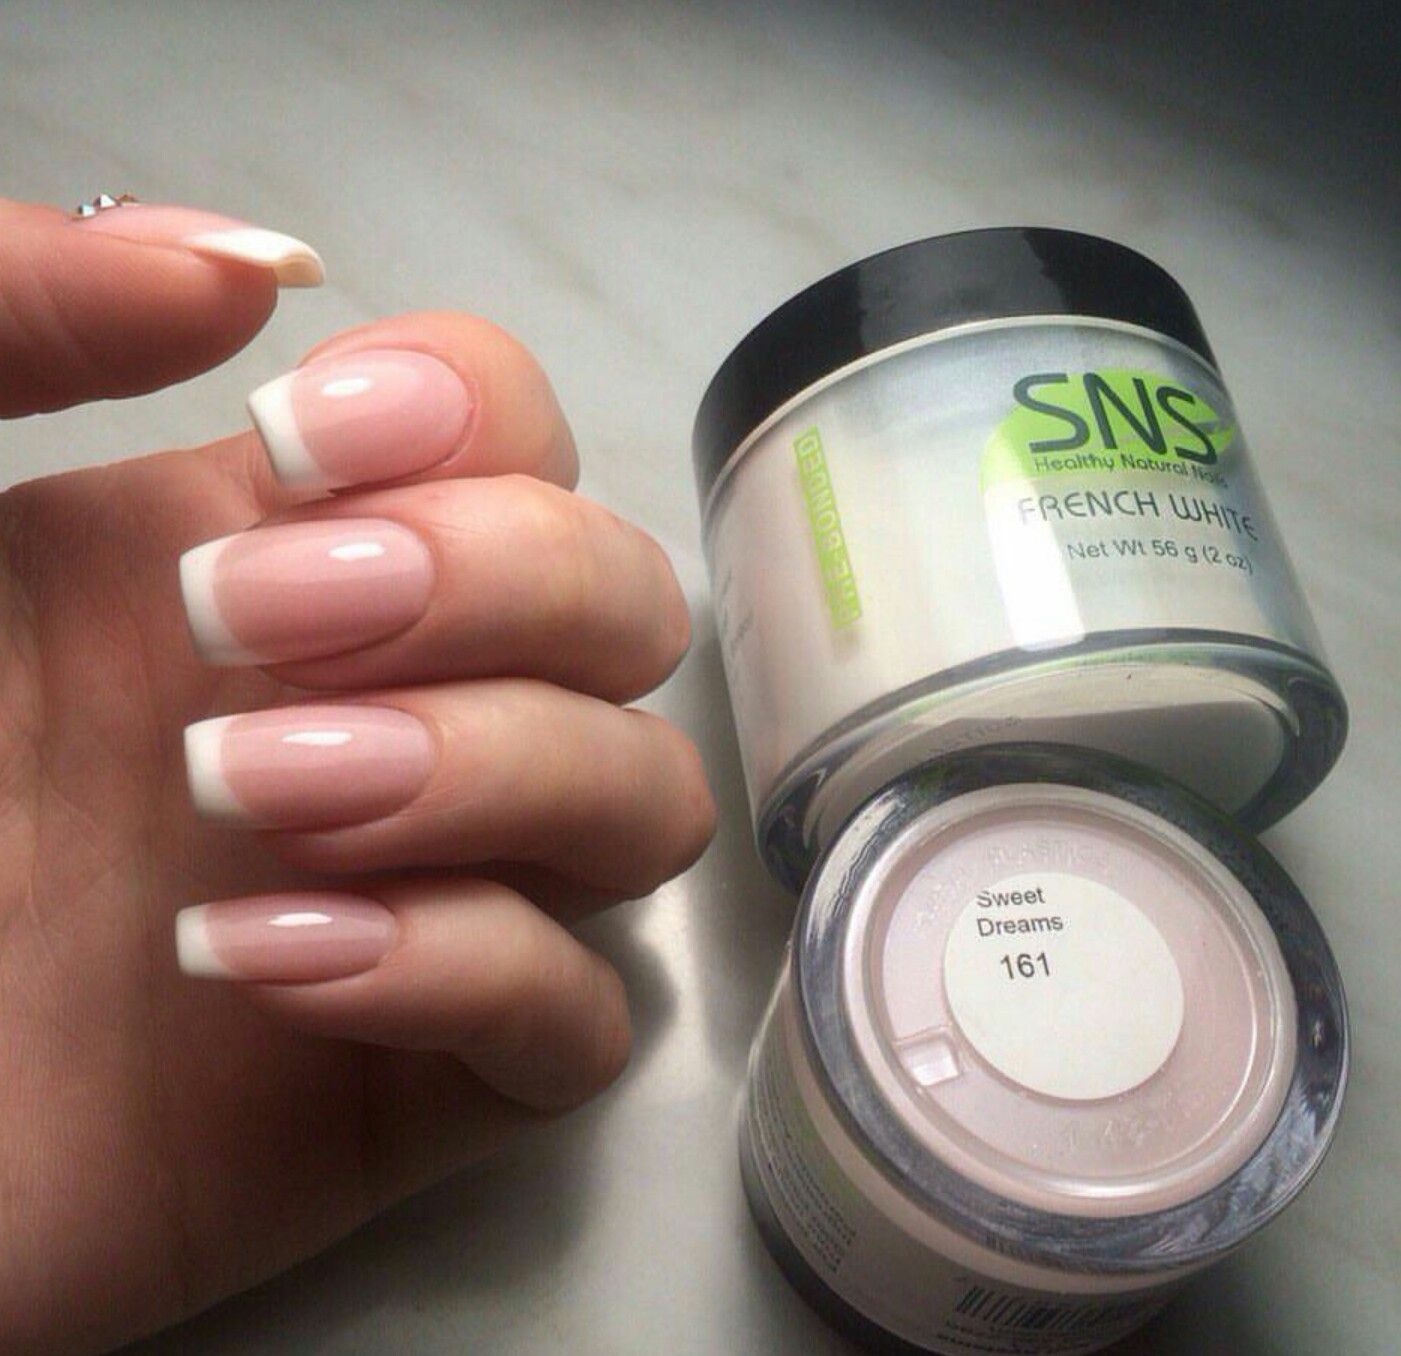 SNS French Manicure | Face Painting Business | Pinterest | Manicure ...